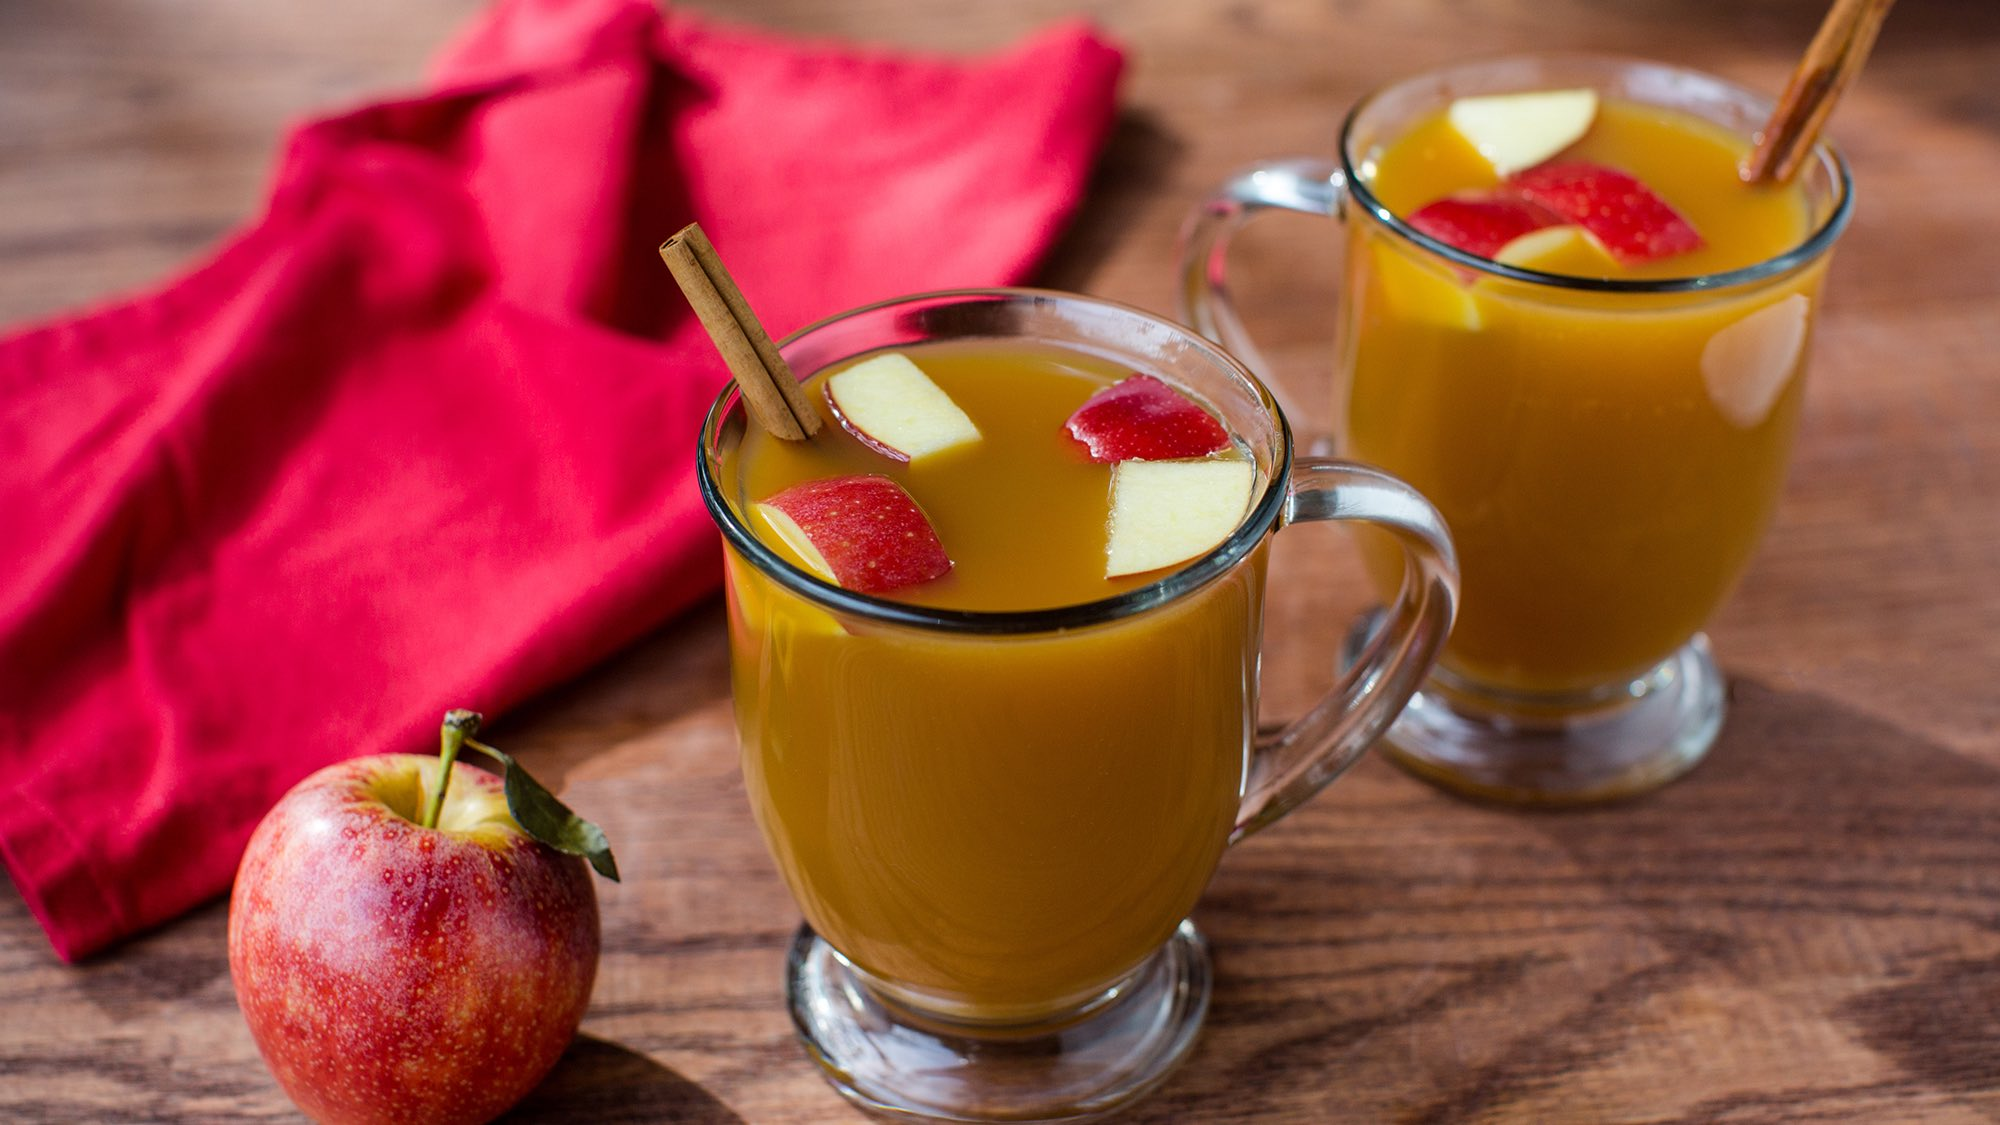 McCormick Slow Cooker Spiced Cider